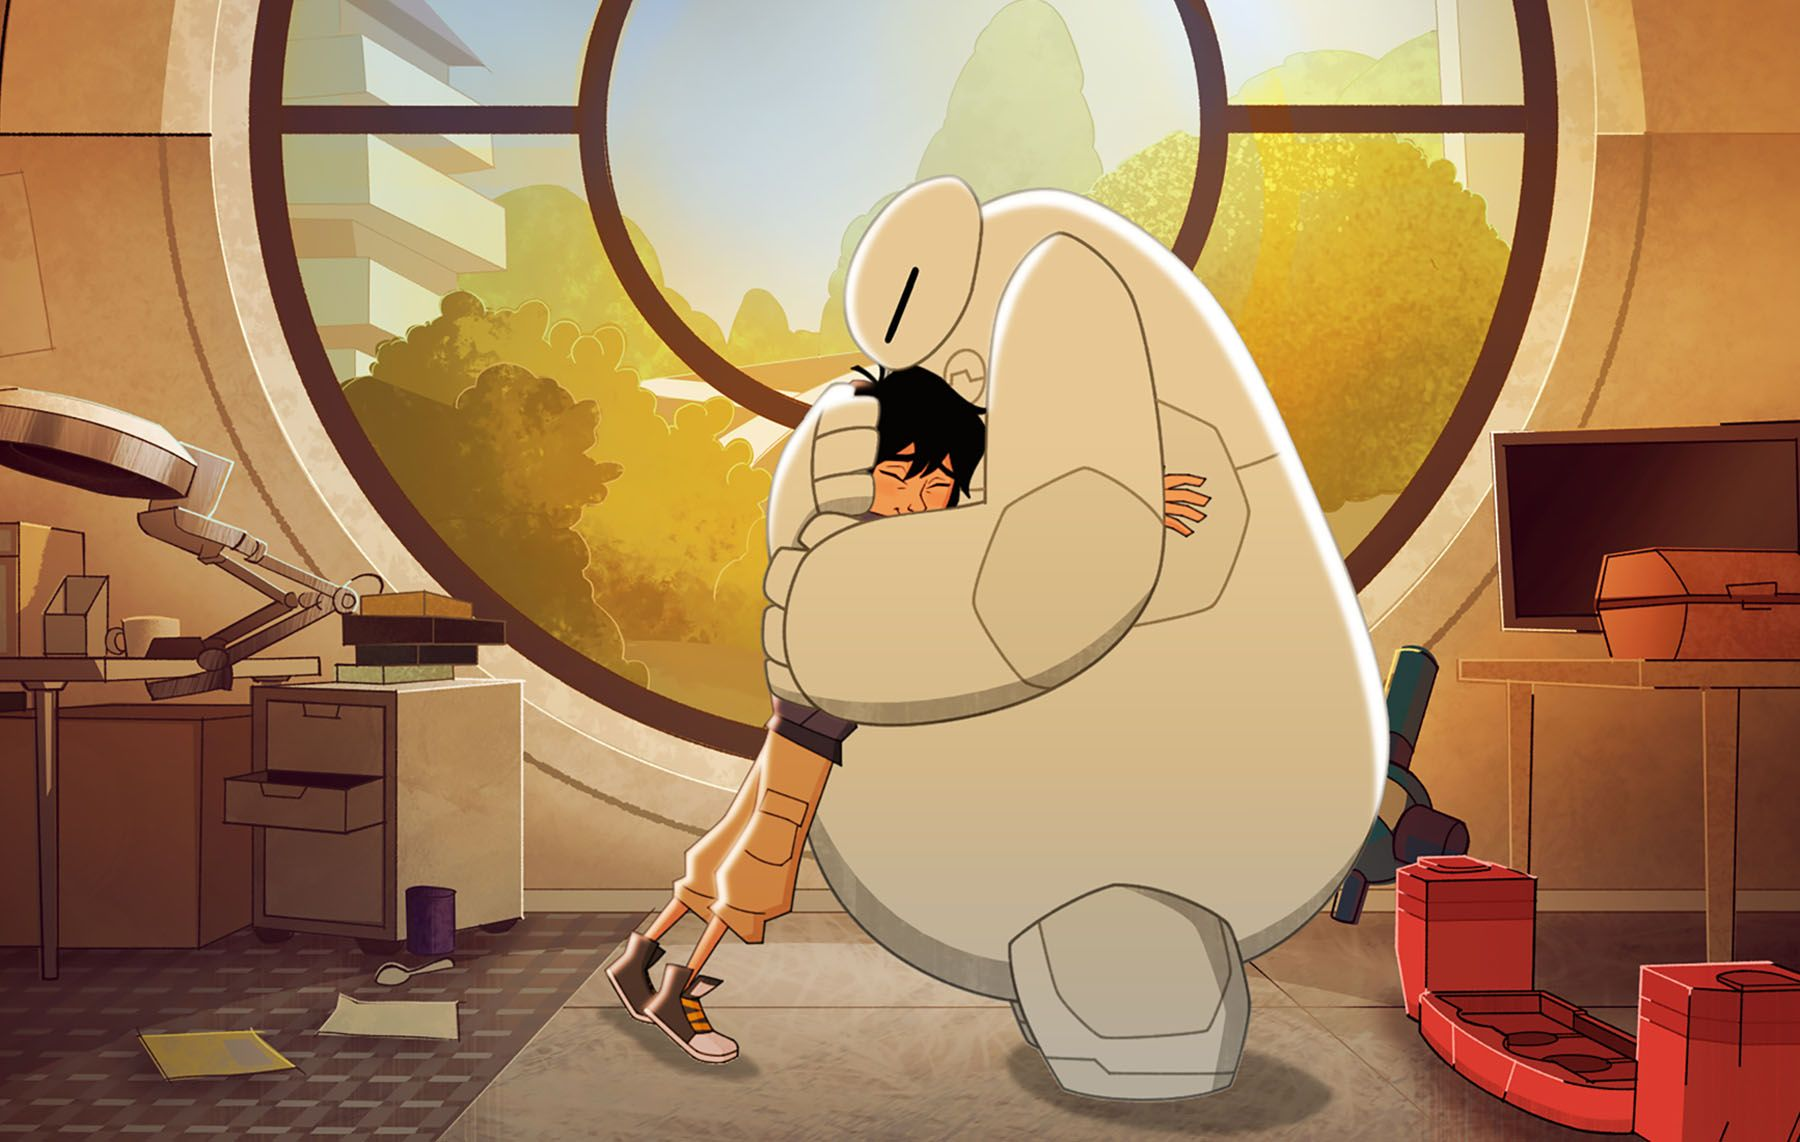 big hero 6 Licensed to youtube by wmg, avex inc, umg (on behalf of disney) ubem, walt disney music company (publishing), pedl, umpi, amra, and 15 music rights societies show more show less.